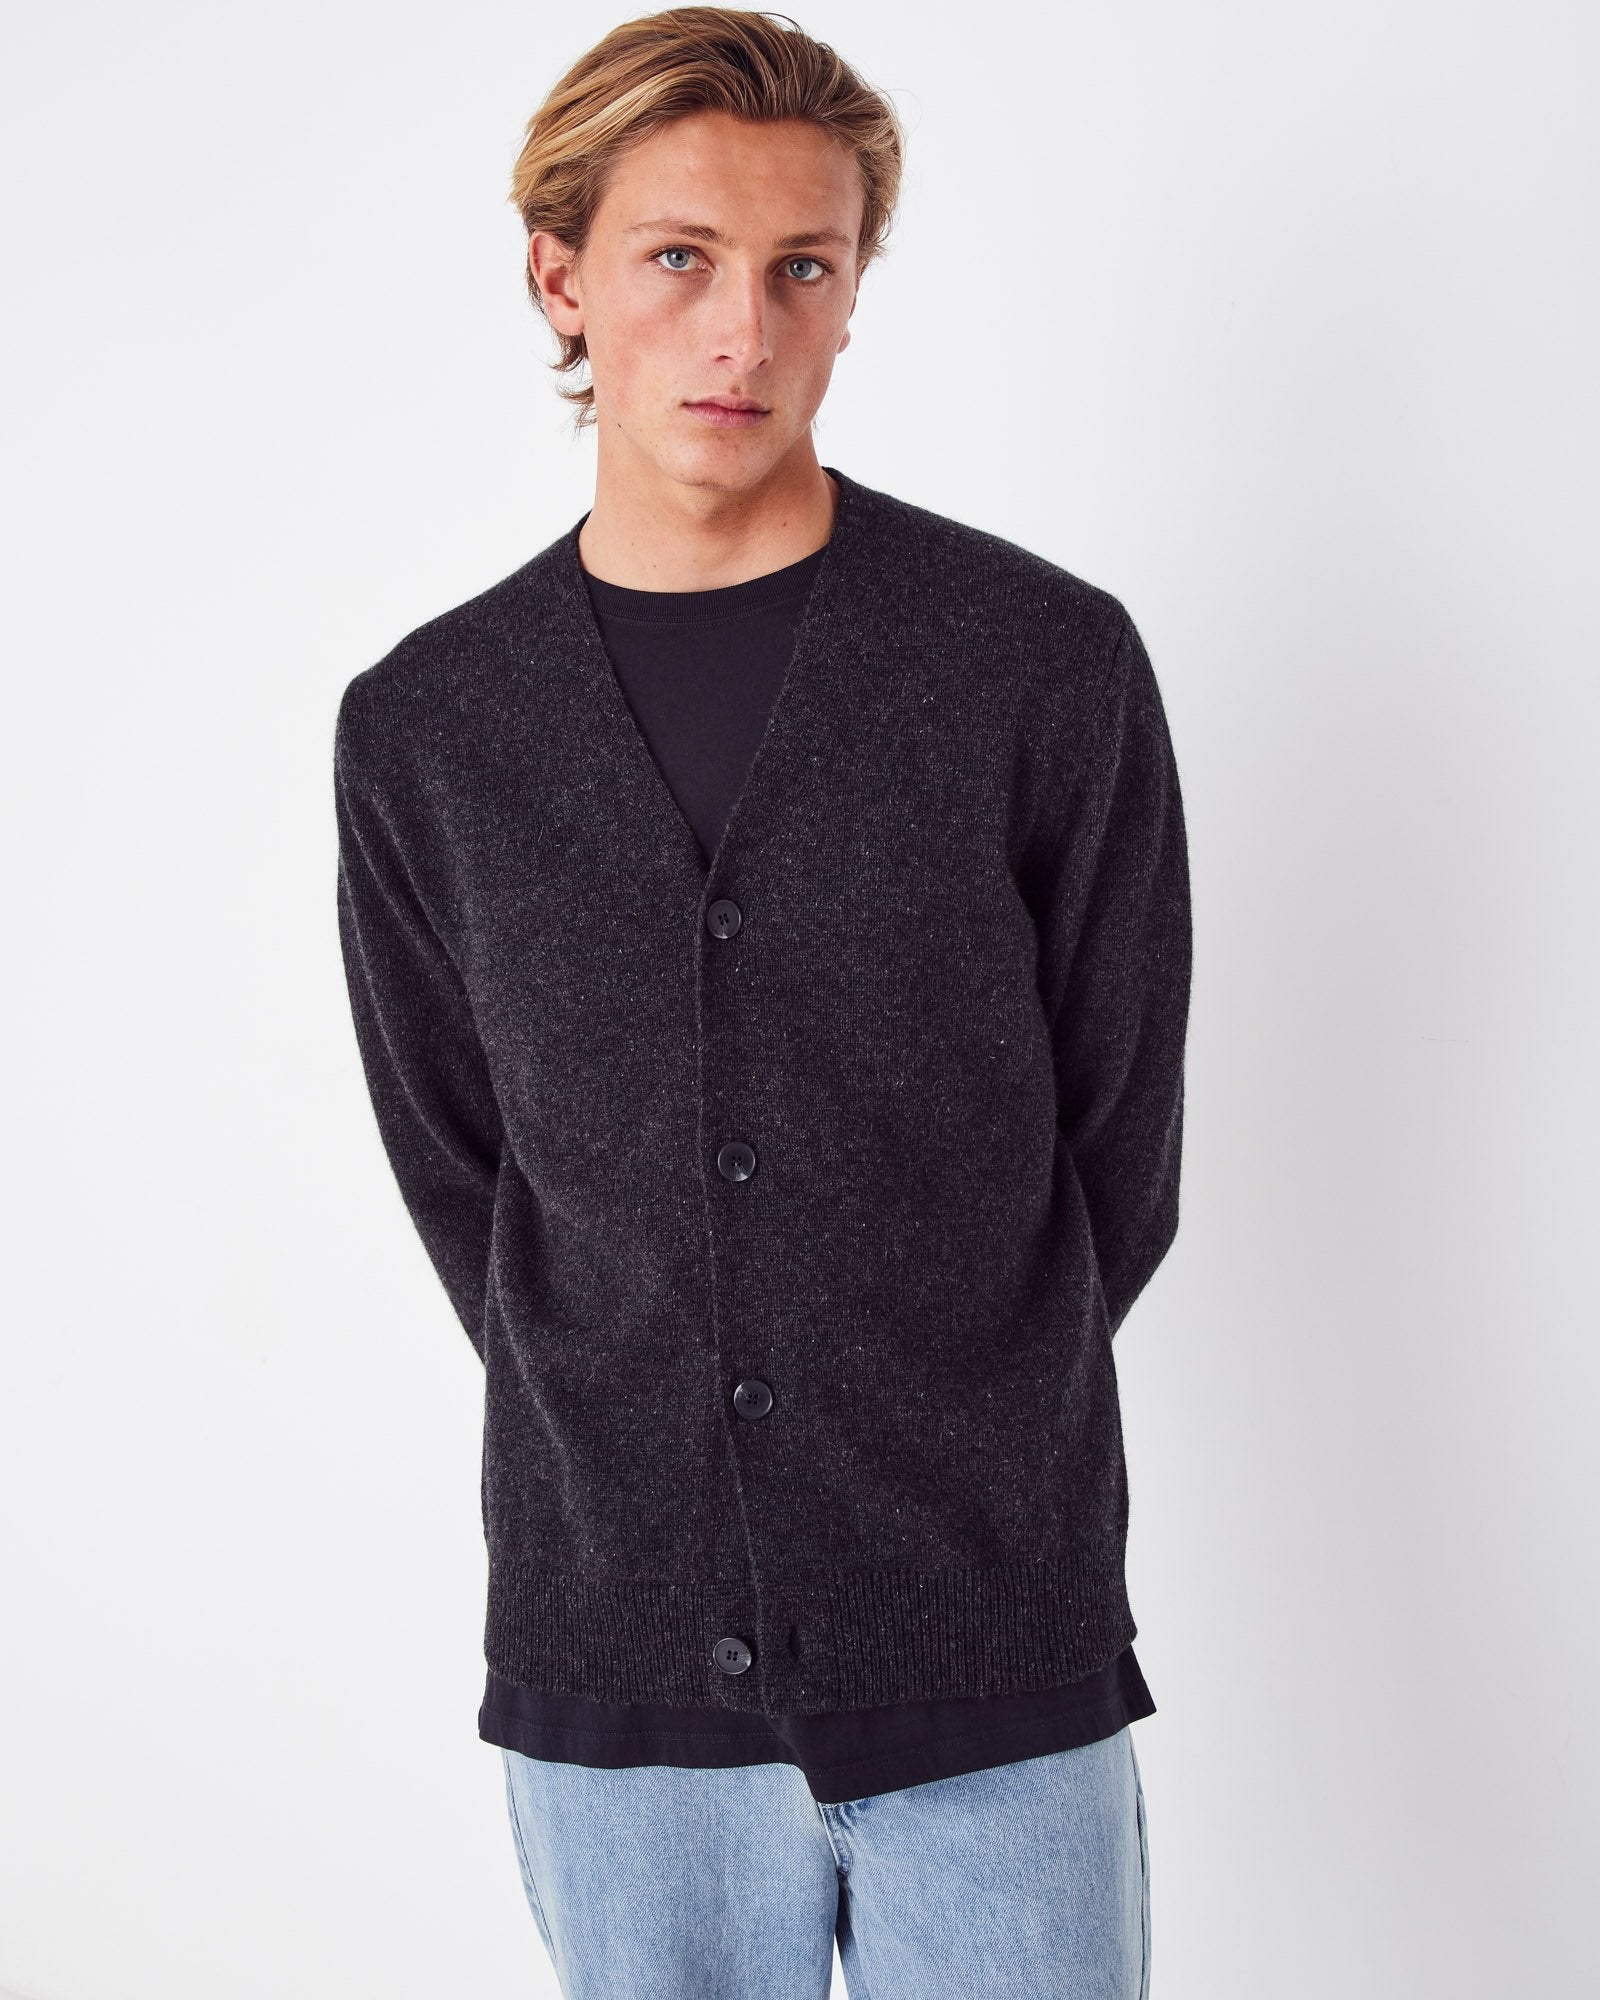 Crosby Wool Cardigan Charcoal